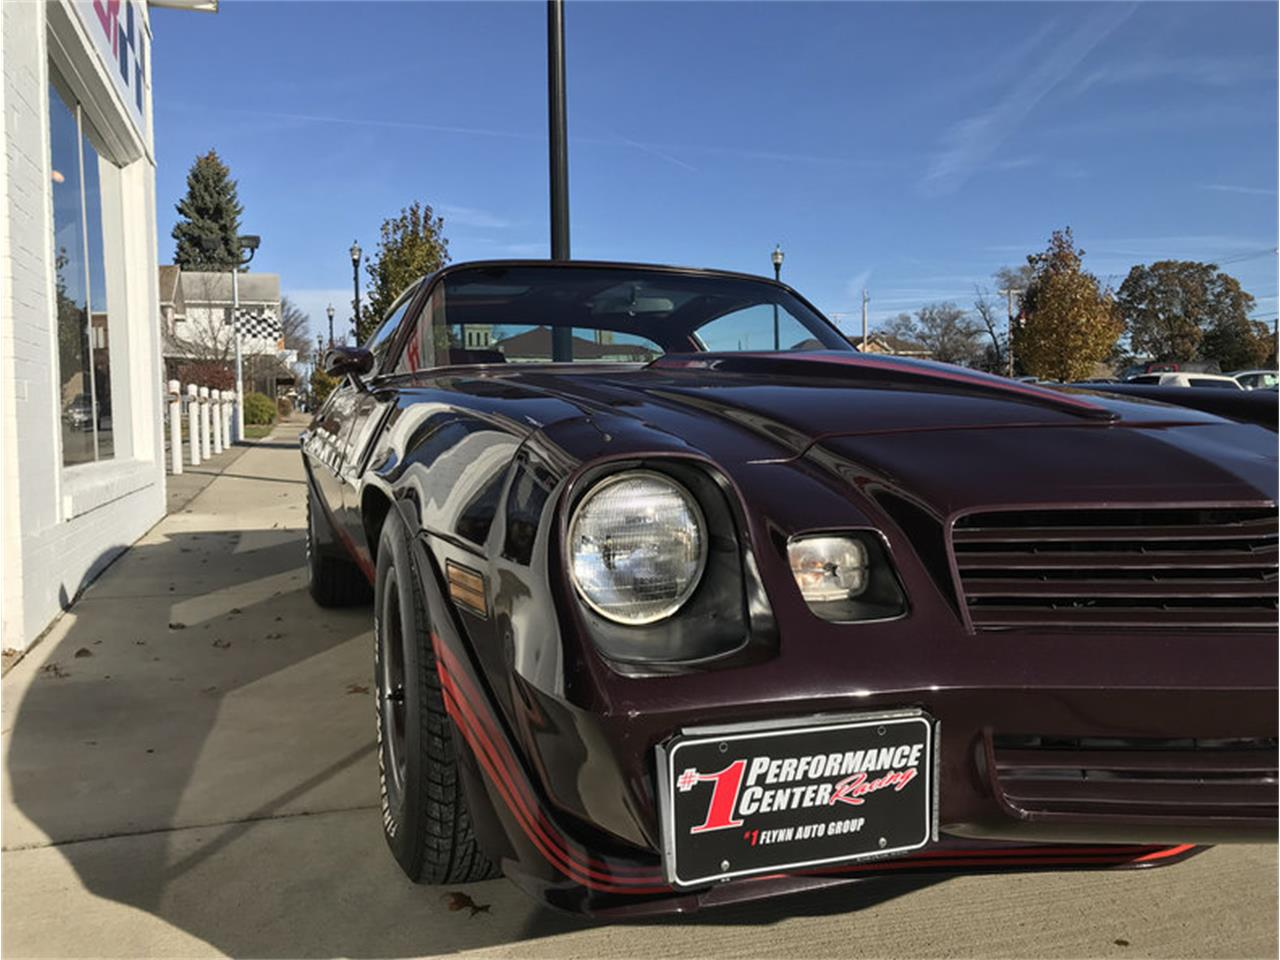 Large Picture of '80 Camaro Z28 located in Ohio - $18,500.00 Offered by 1 Performance Center Racing - ME89